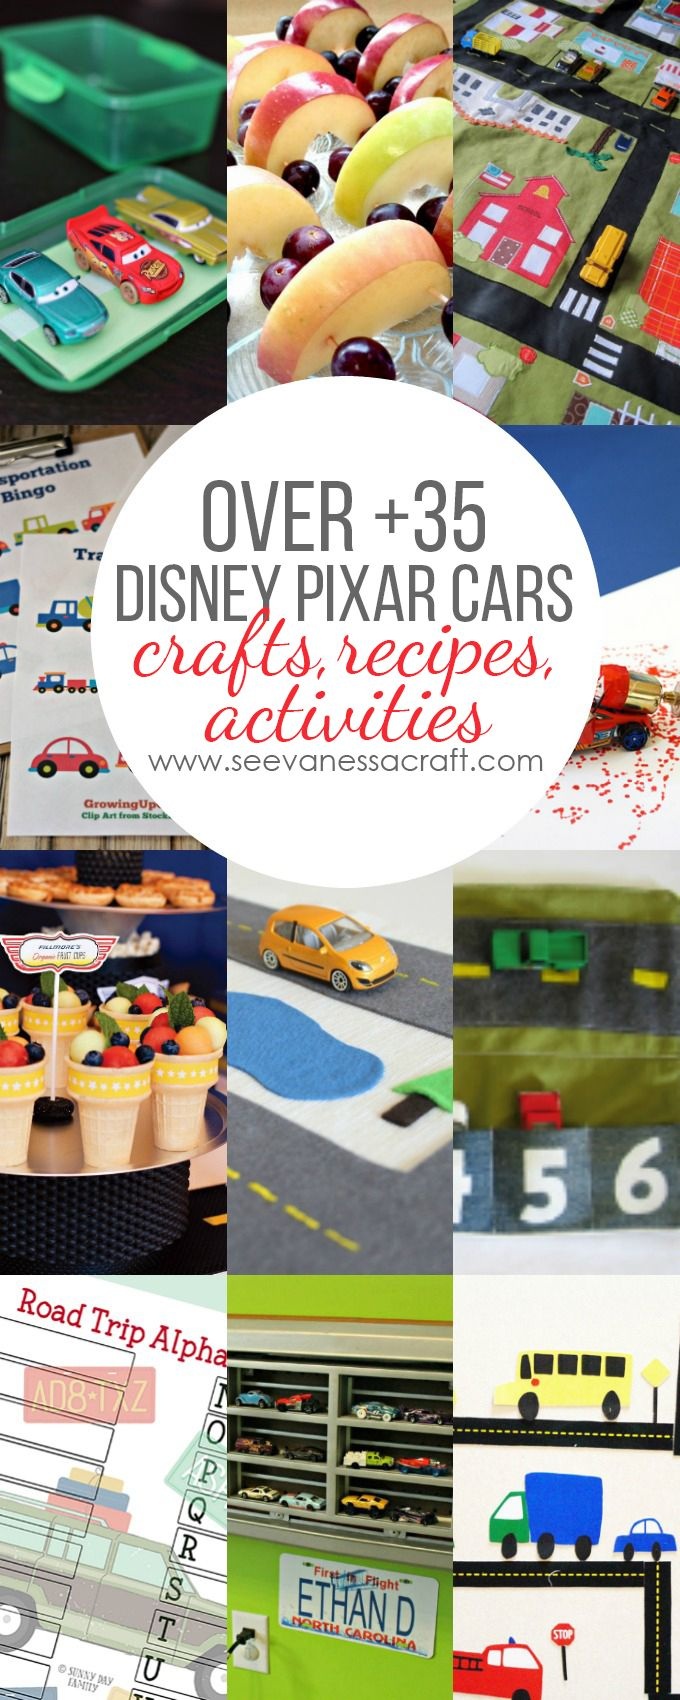 Over 35+ Disney Pixar Cars Crafts, Recipes and Activities!